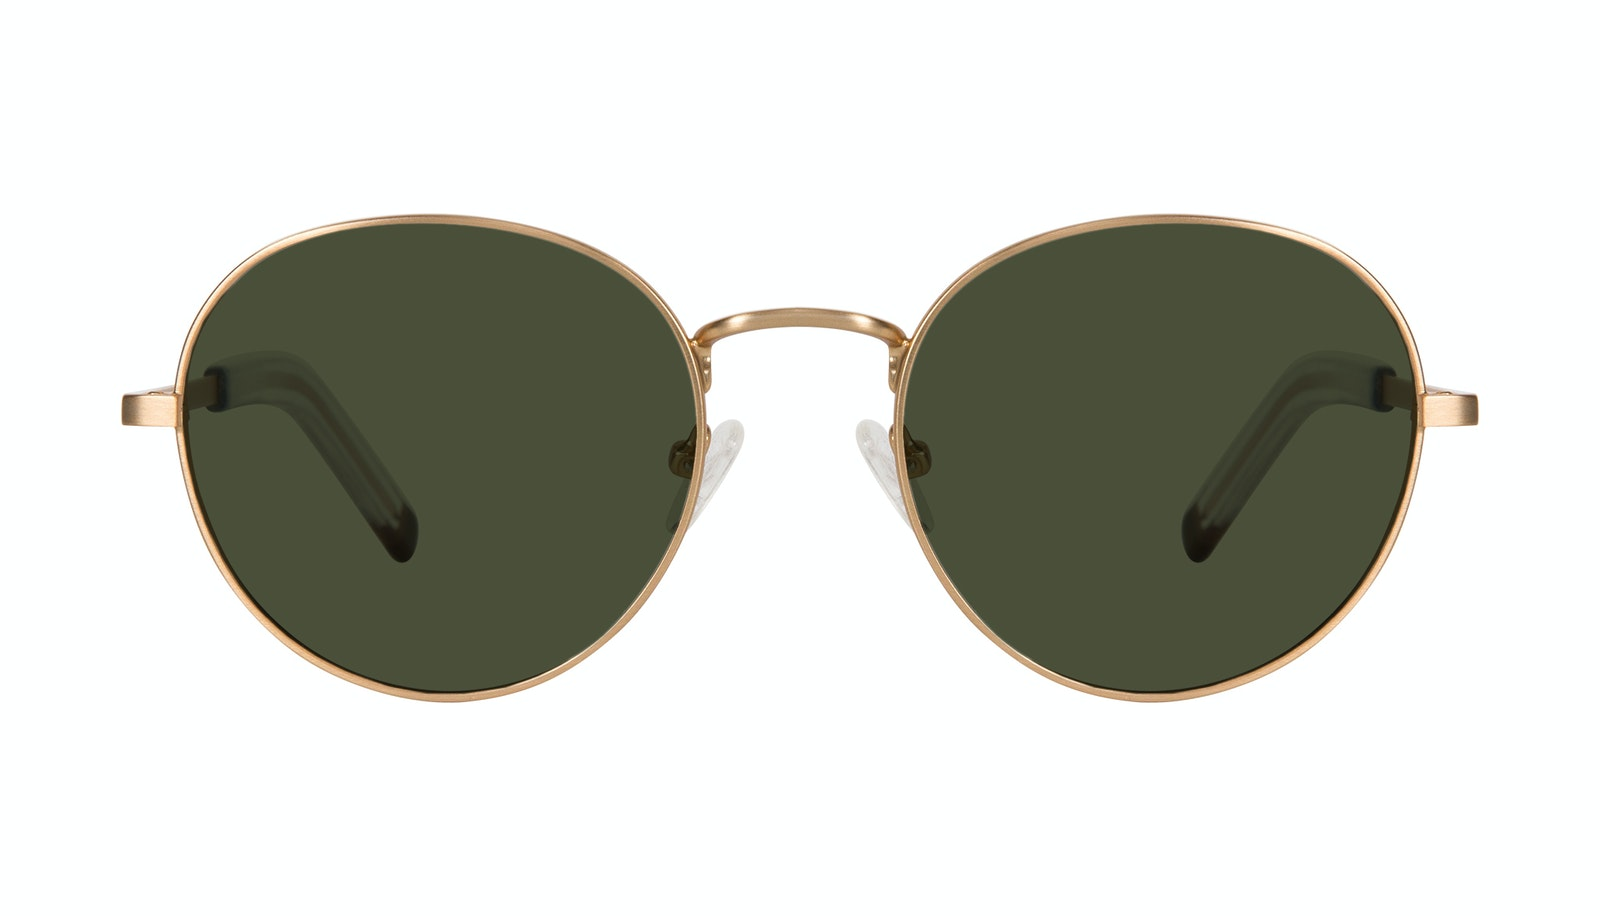 Affordable Fashion Glasses Round Sunglasses Men Lean L Gold Matte